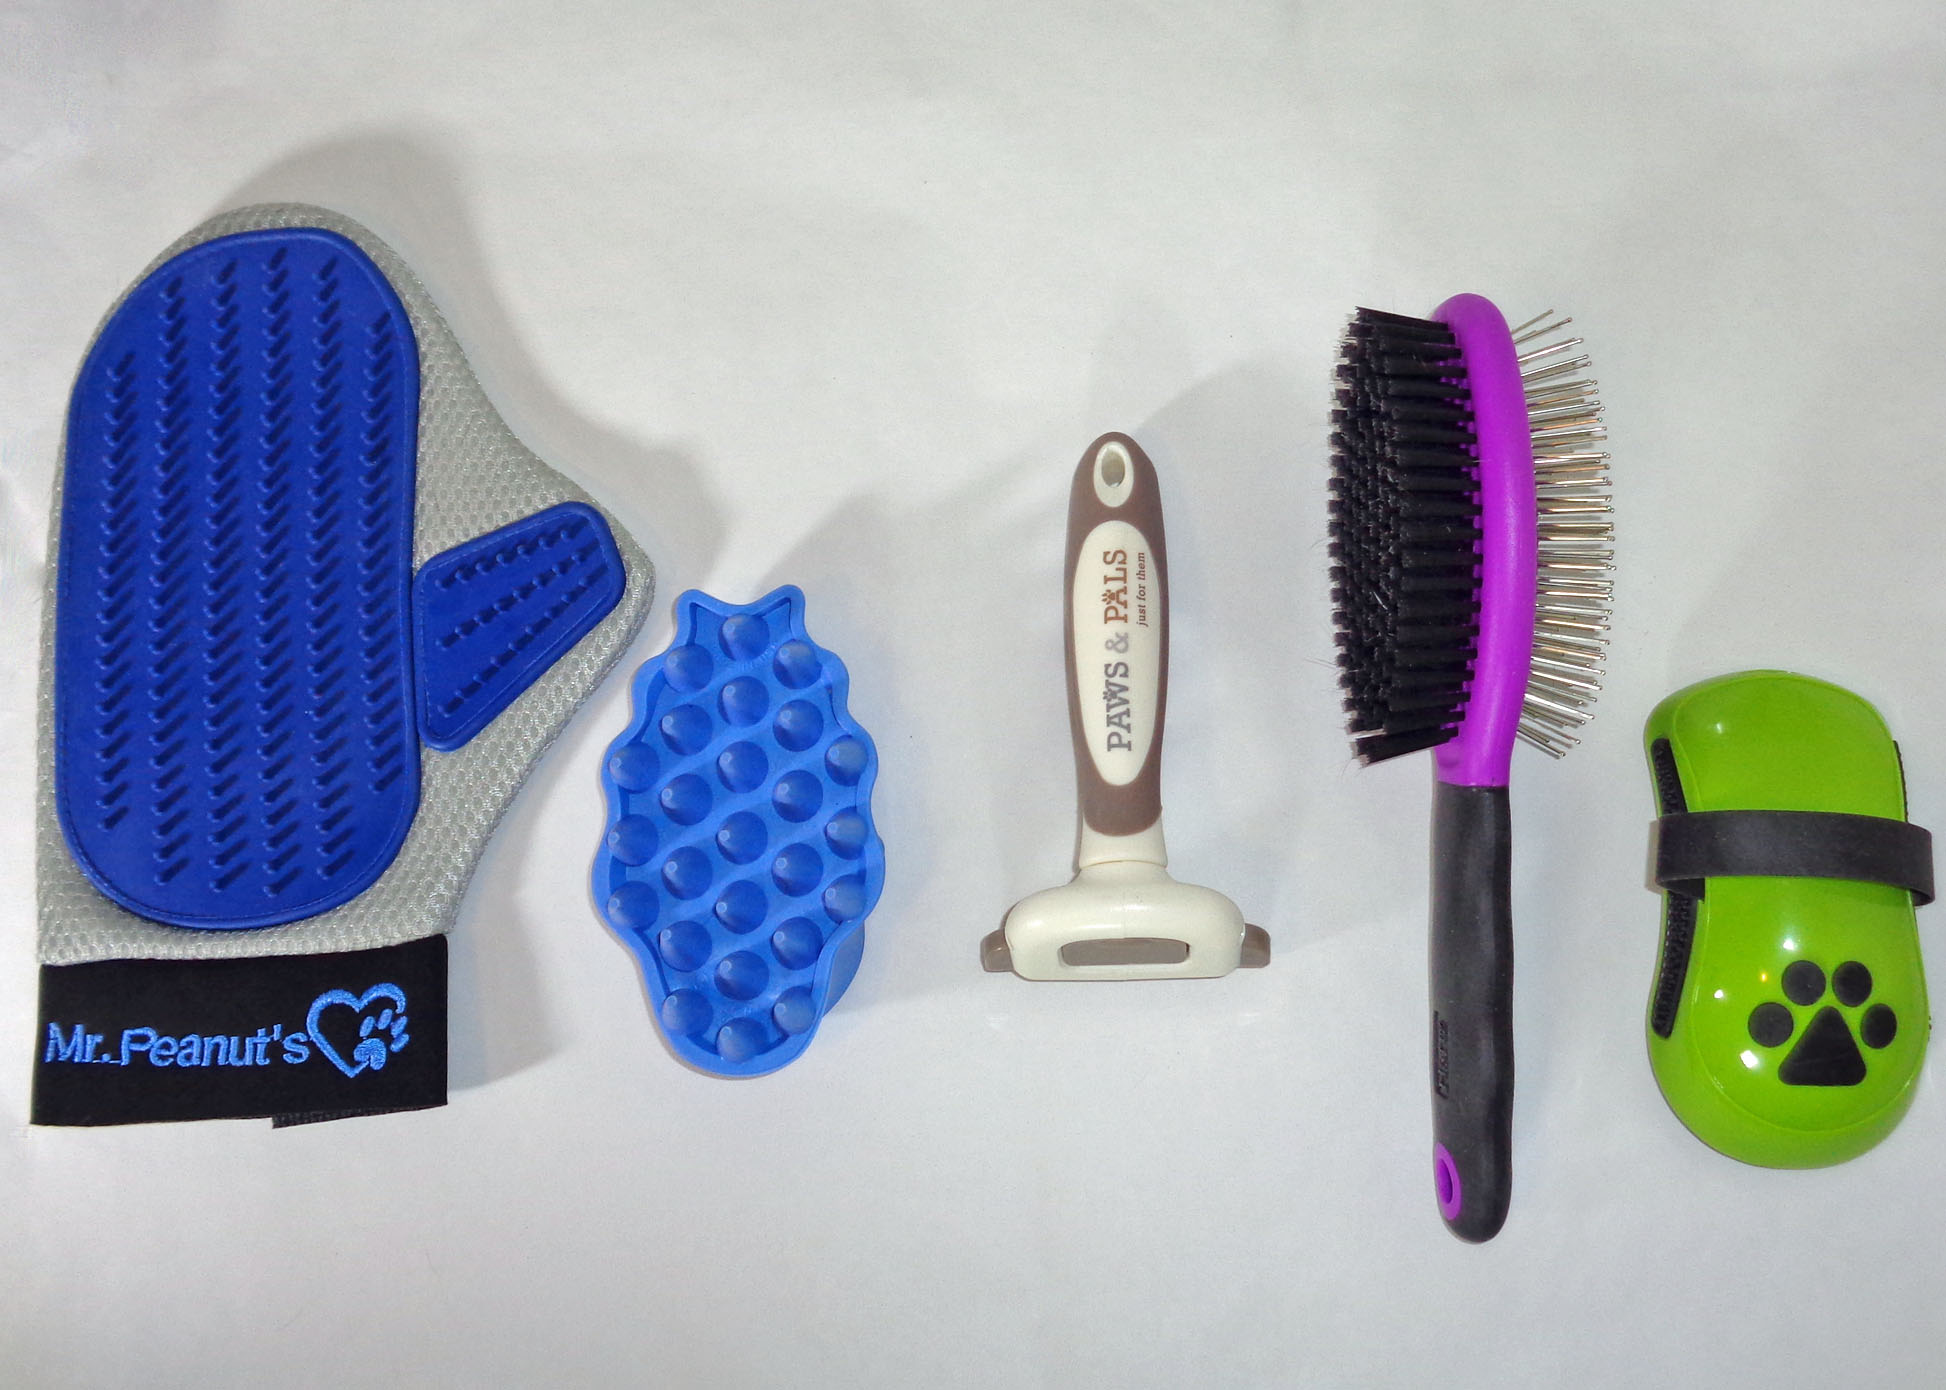 Best Brushes And Deshedding Tools For Short Hair Dogs 2020 Pup Junkies